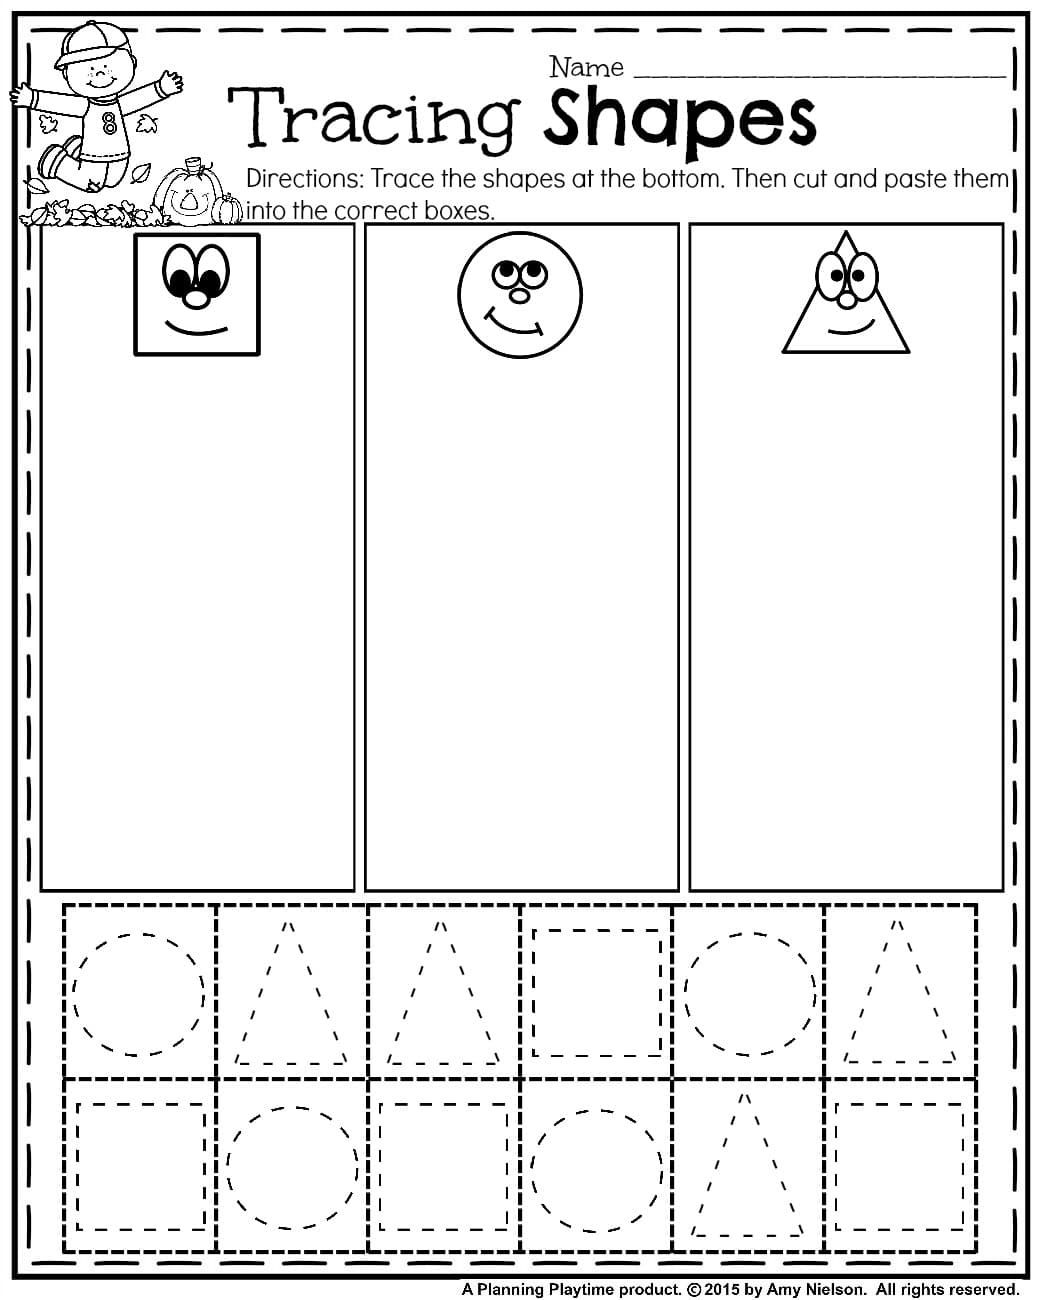 Worksheets Cutting Worksheets For Preschool october preschool worksheets tracing shapes fall and cut paste sort